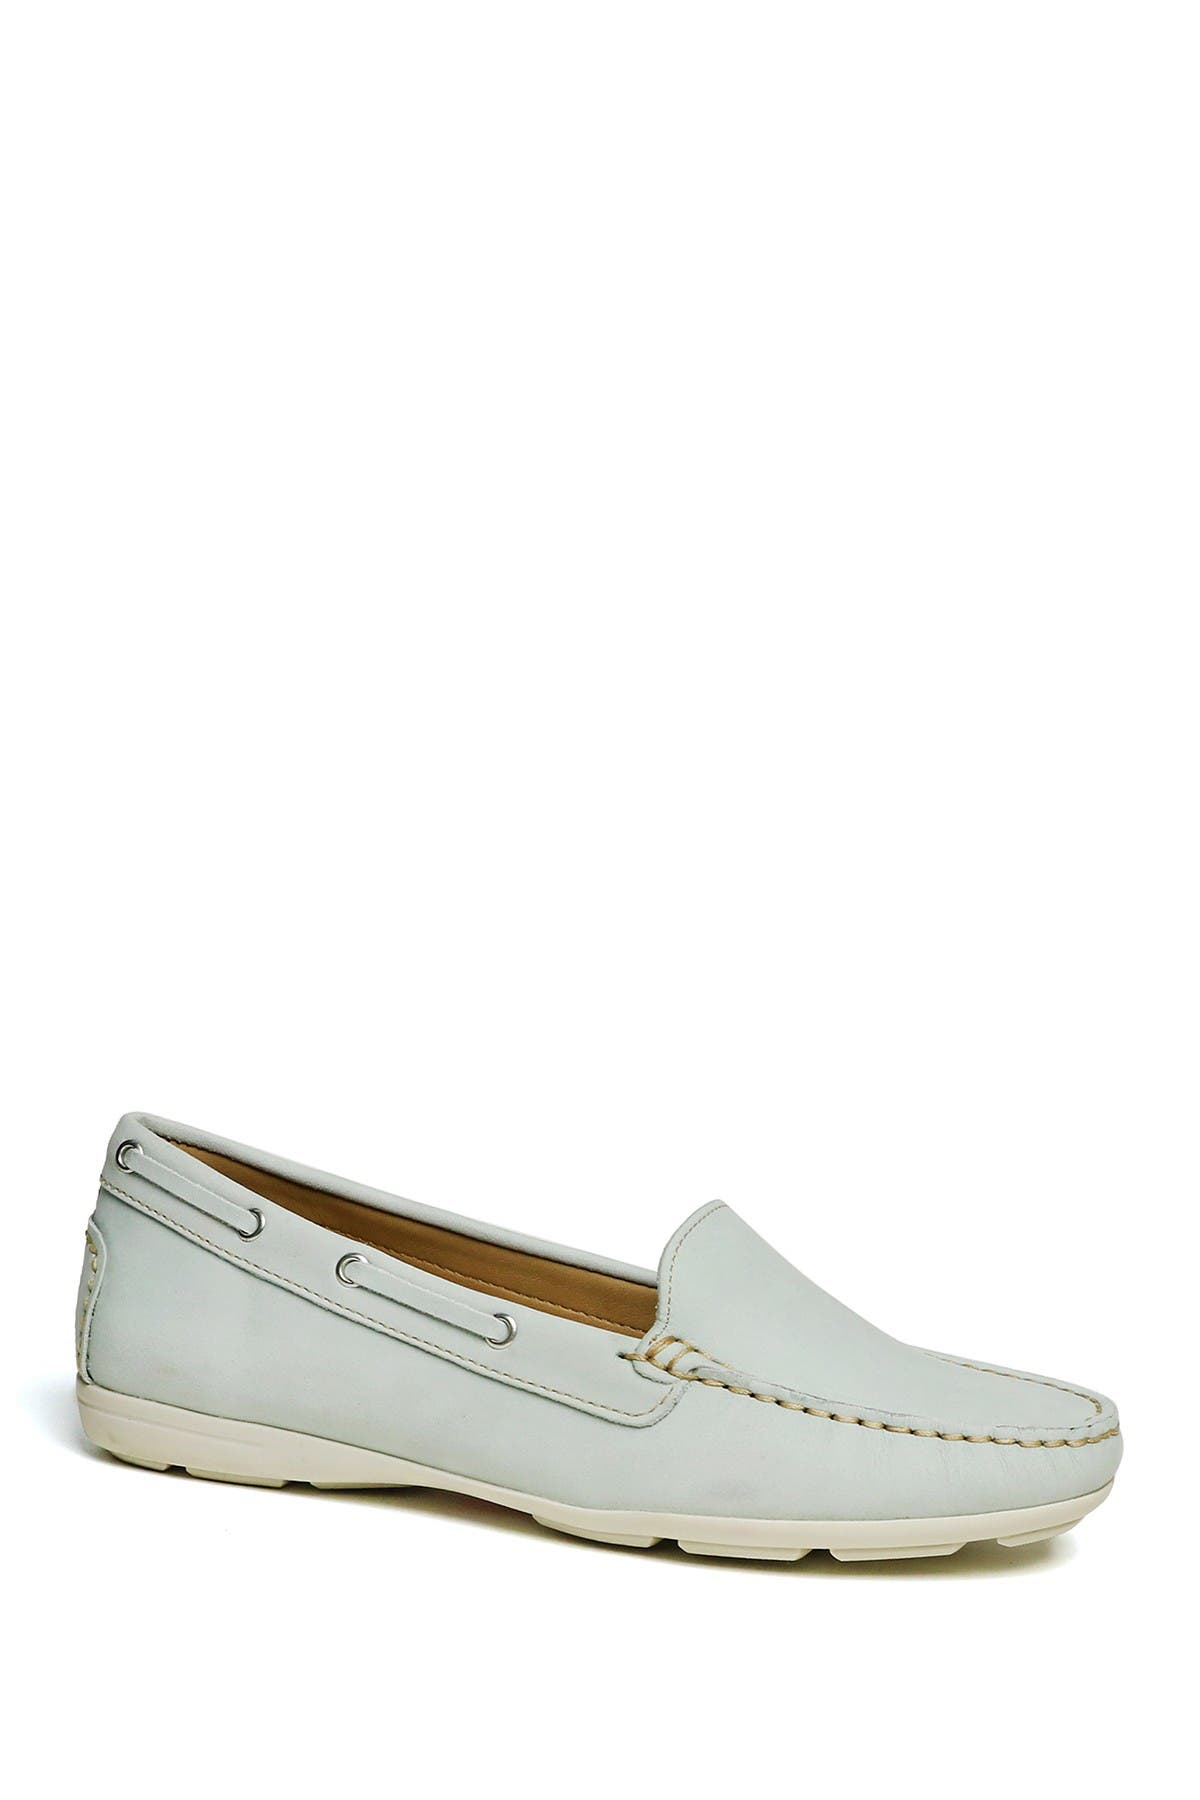 Driver Club USA Womens Leather Made in Brazil Cape Cod Loafer